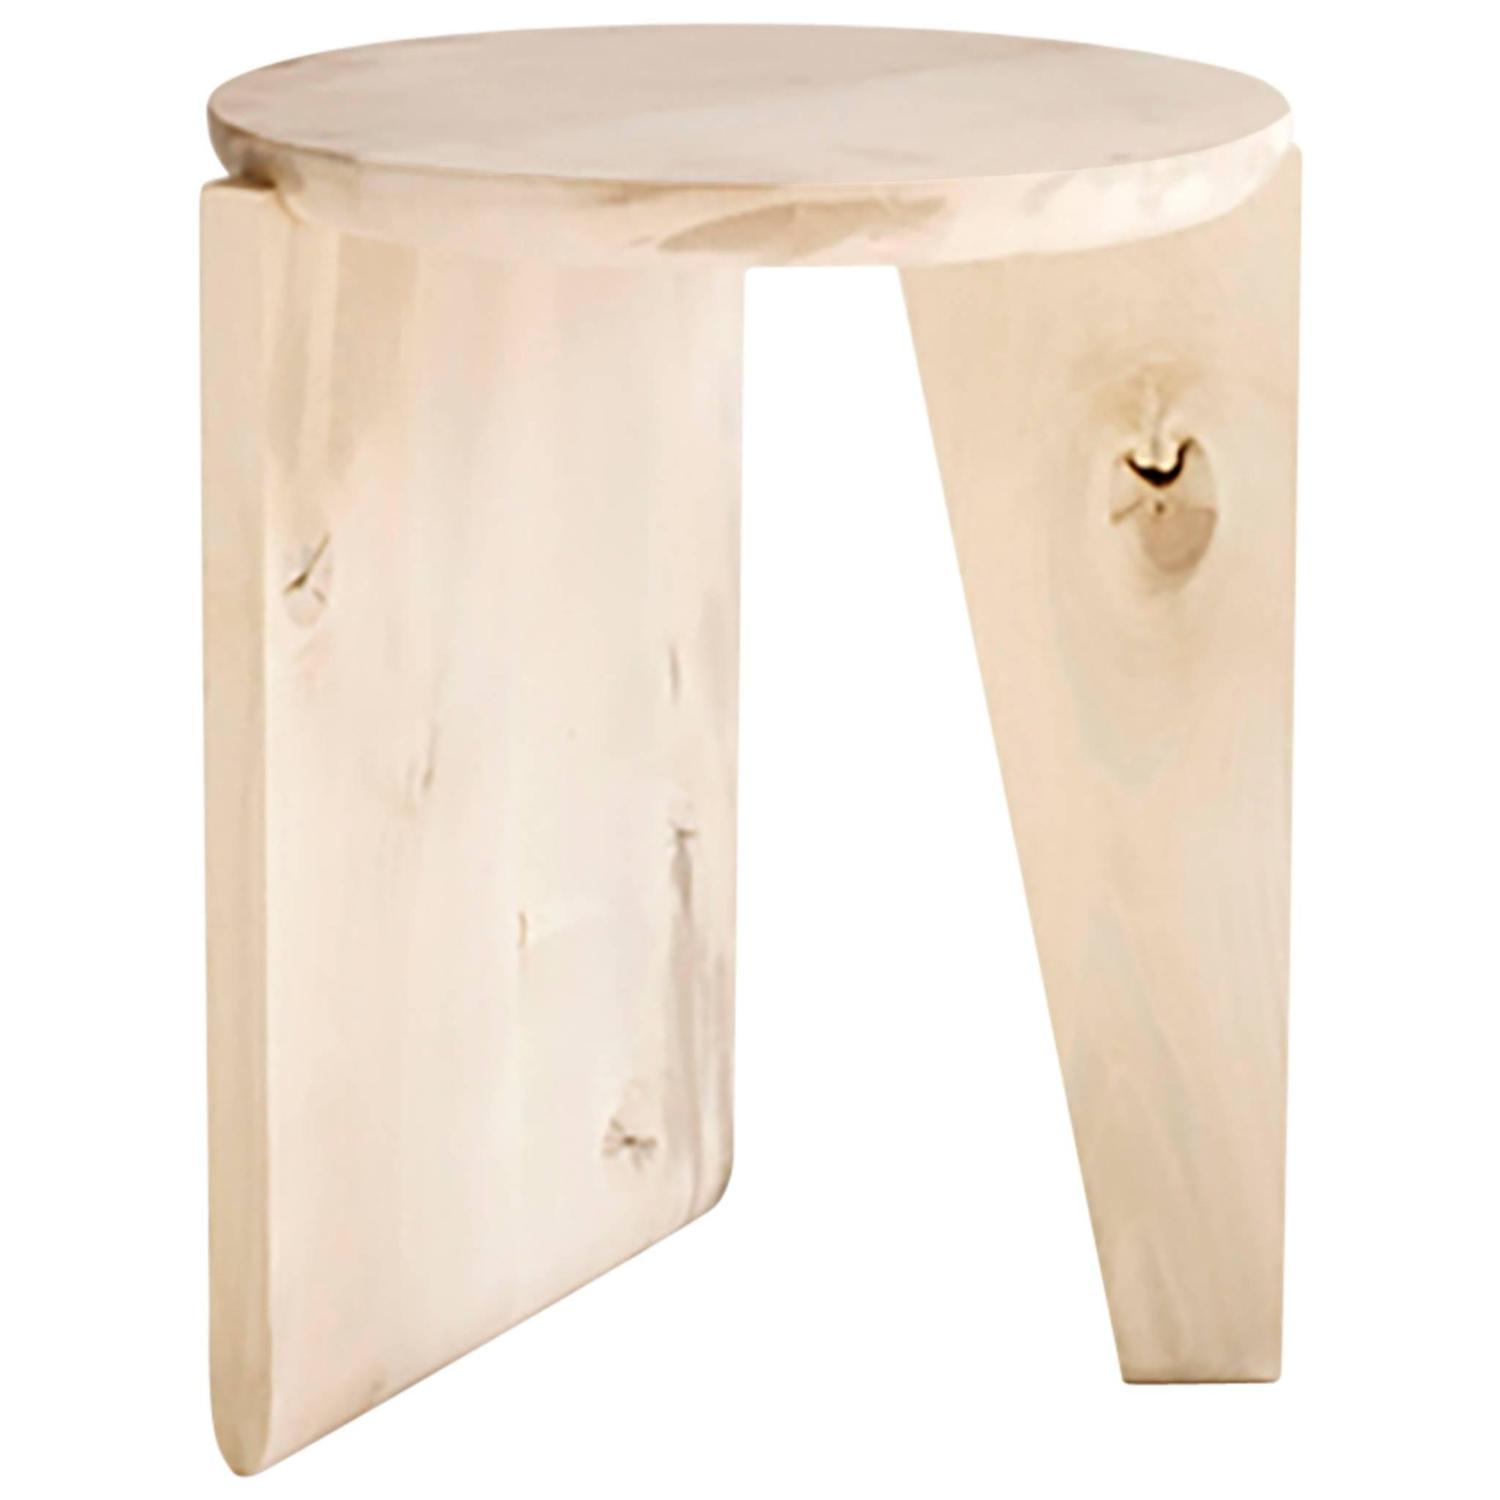 Wu Side Table Or Stool, Solid Wood For Sale At 1stdibs